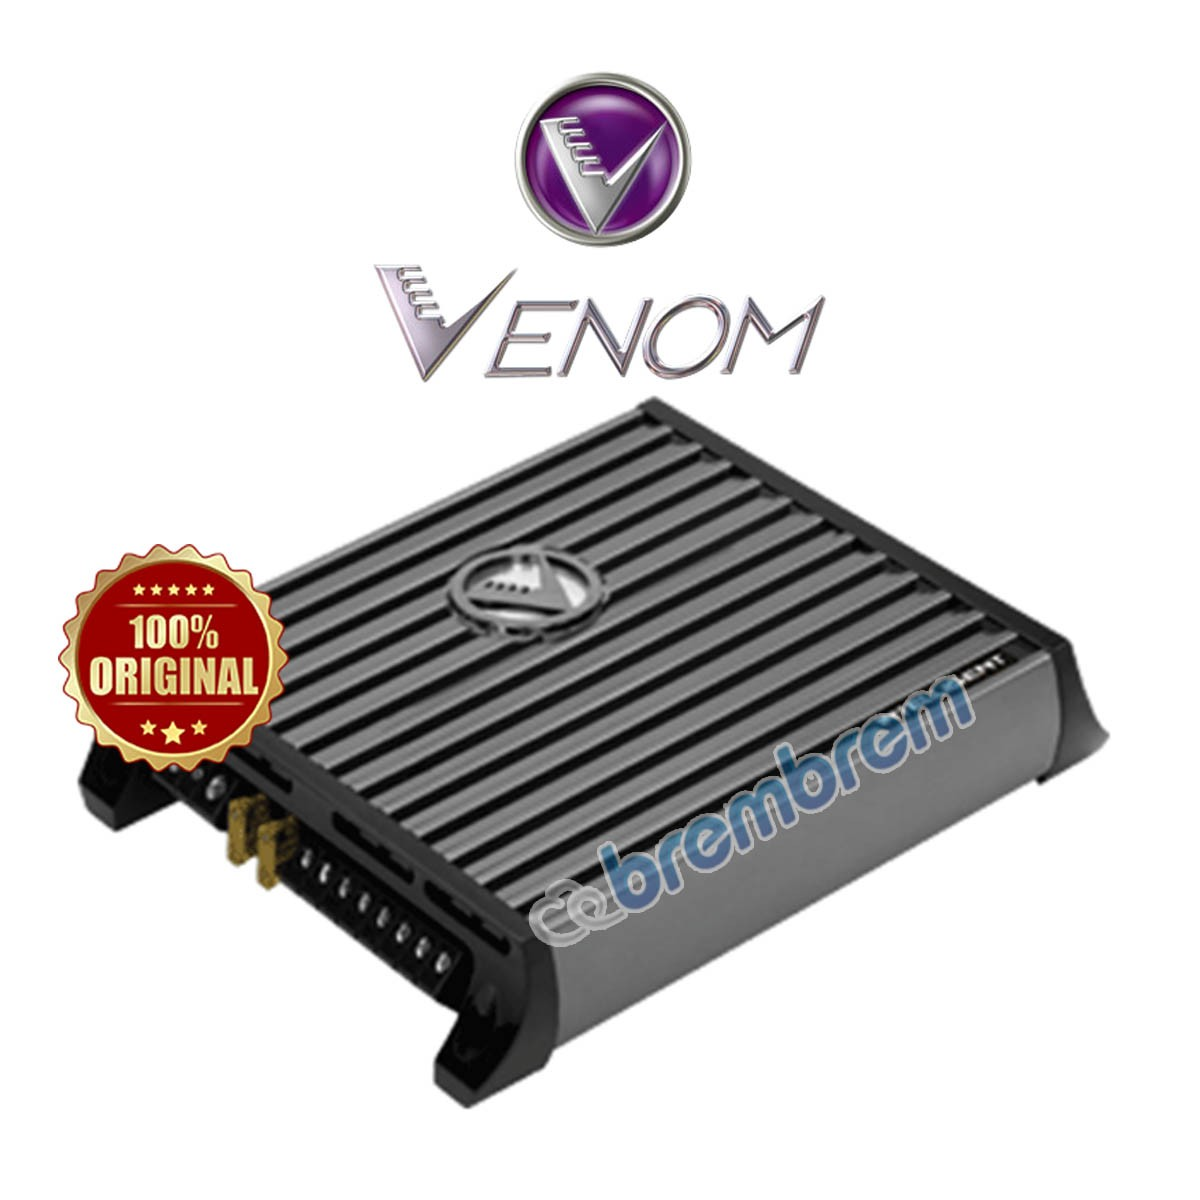 VENOM INTELLEGENT SERIES VI100.4D - POWER 4 CHANNEL